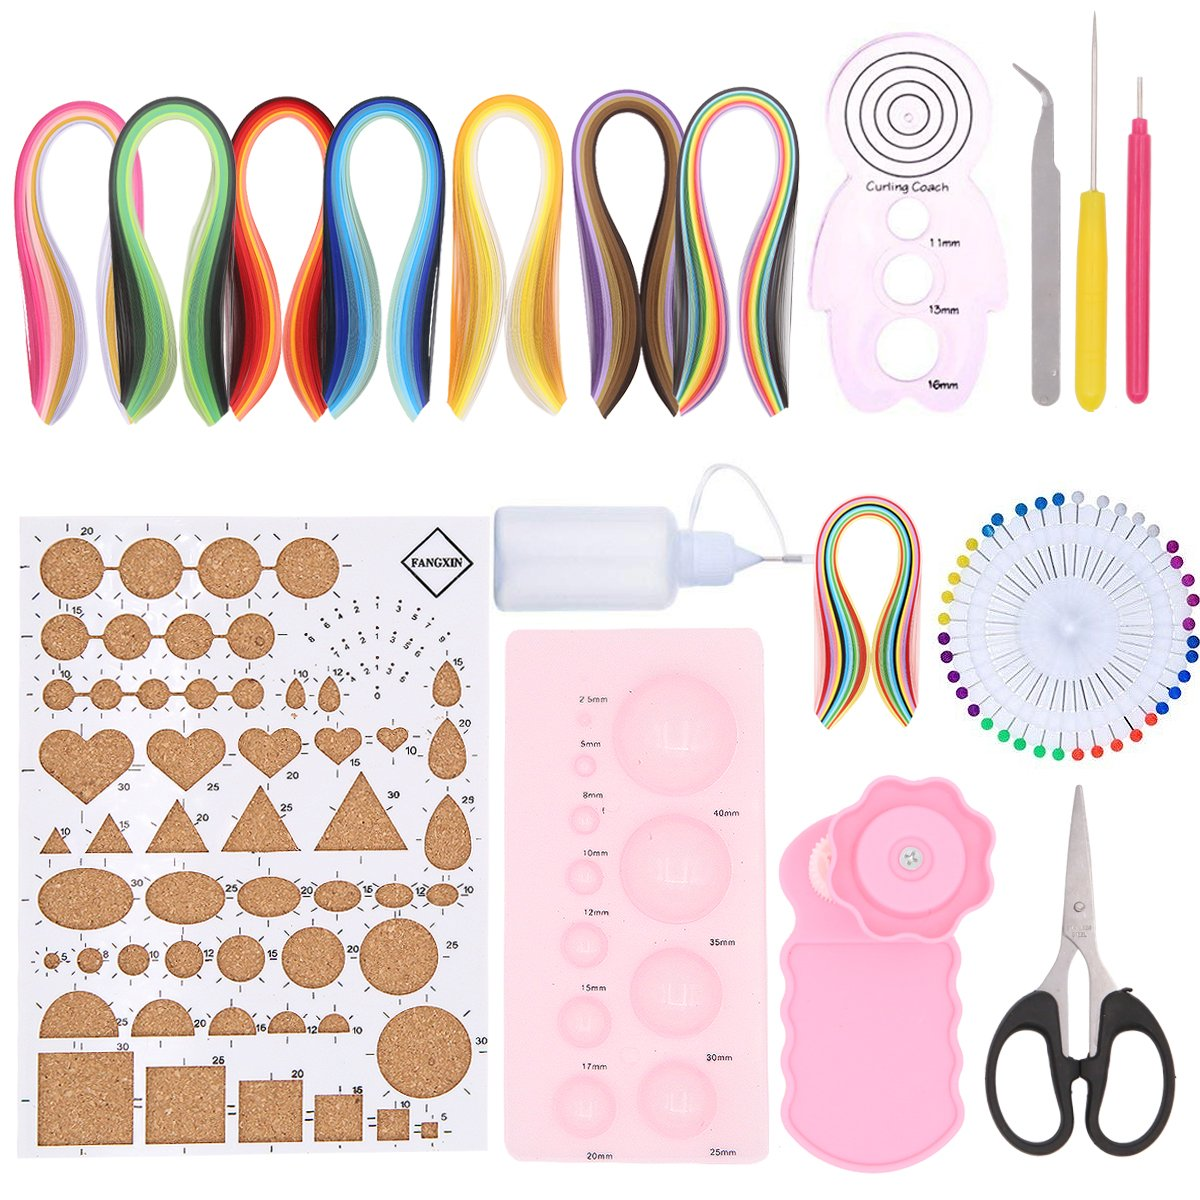 19 in 1 Paper Quilling Kit with 960 Strips 3mm Paper and 11 Tools Supplies,Crimper Comb Ruler Pins Border Buddy Set for DIY Quilling Art ApolDirect